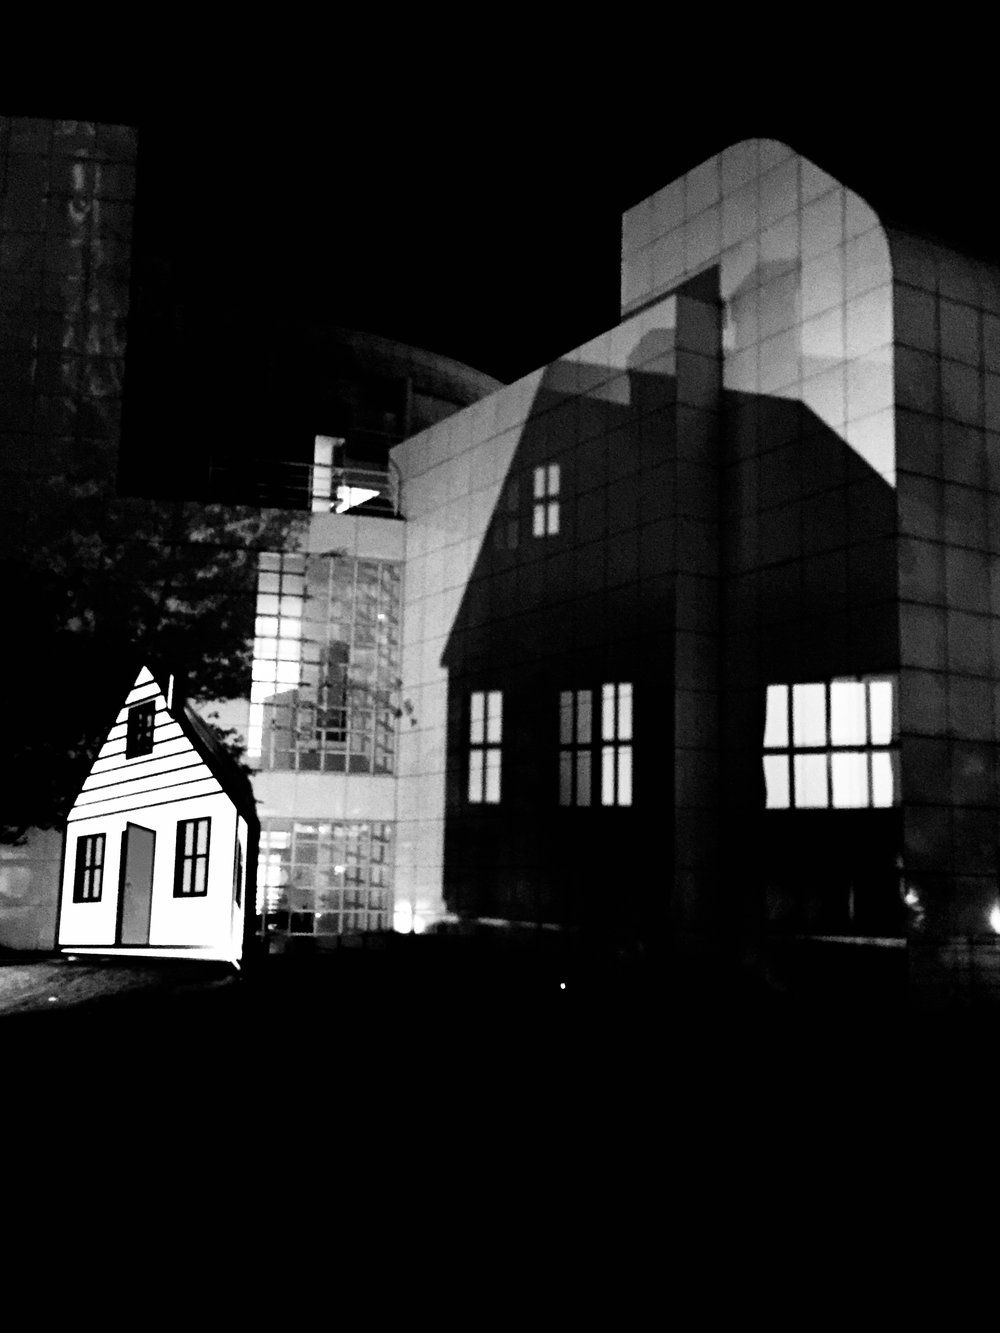 Wooddruff Arts Center Black and White.jpg